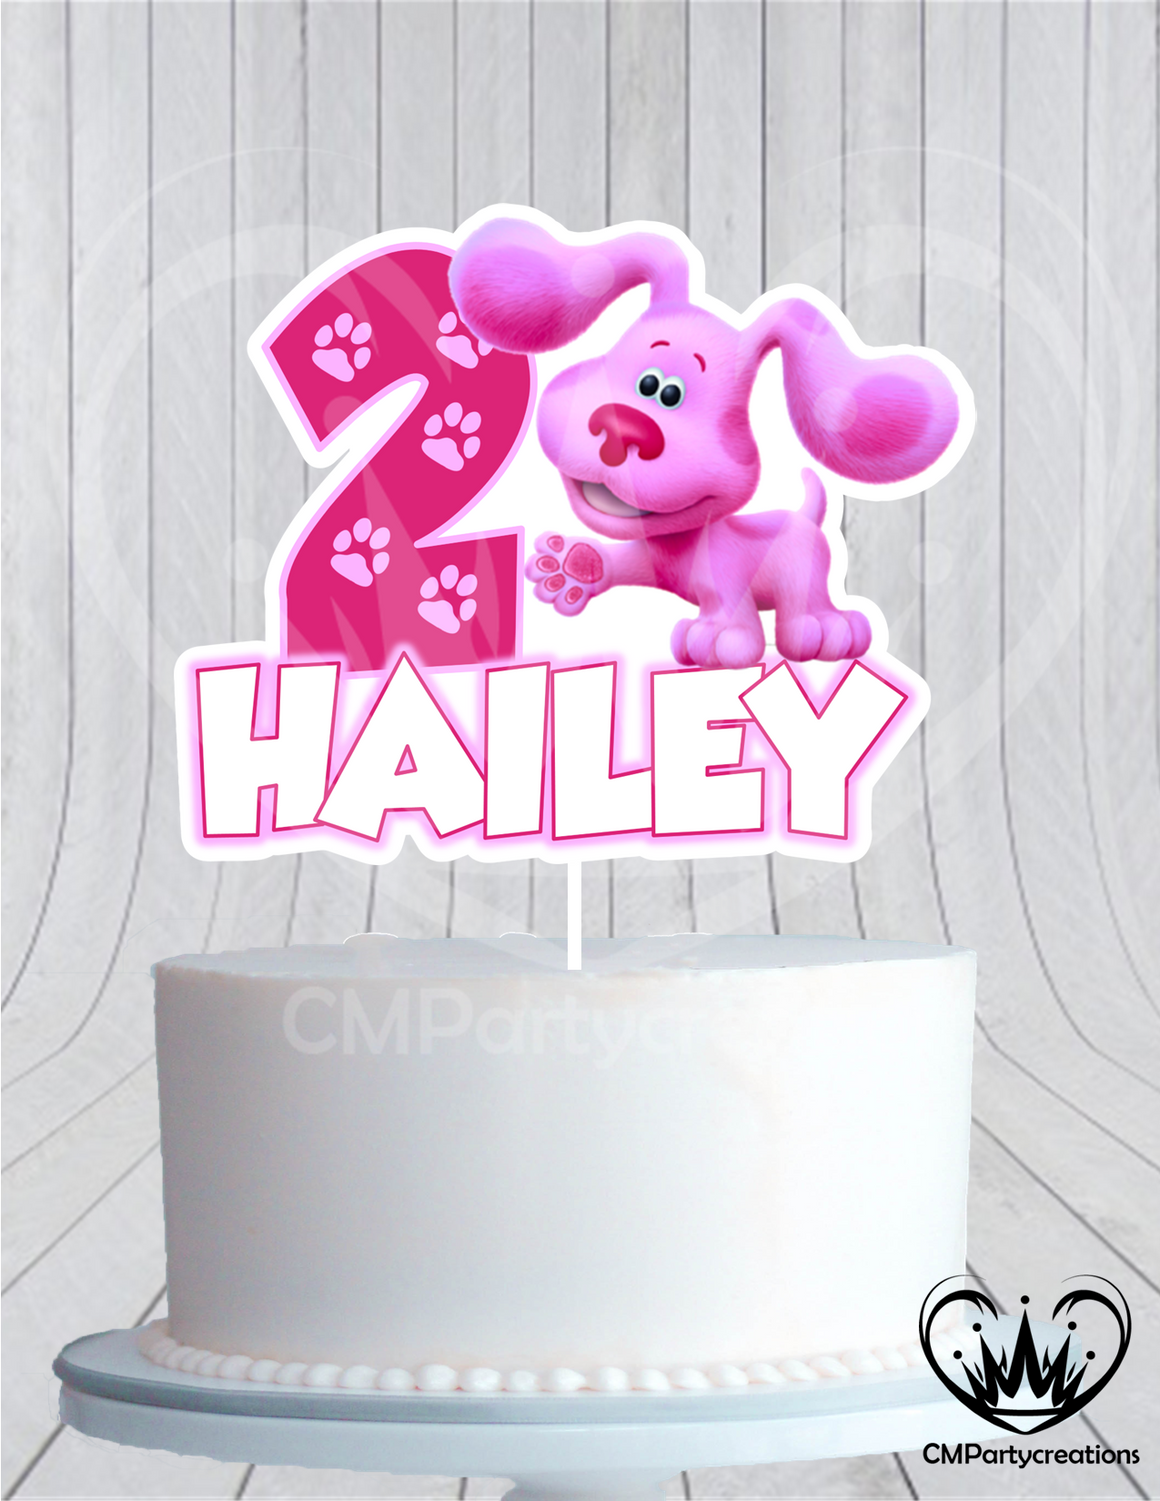 Blues Clues Magenta Cake Topper Birthday Modern